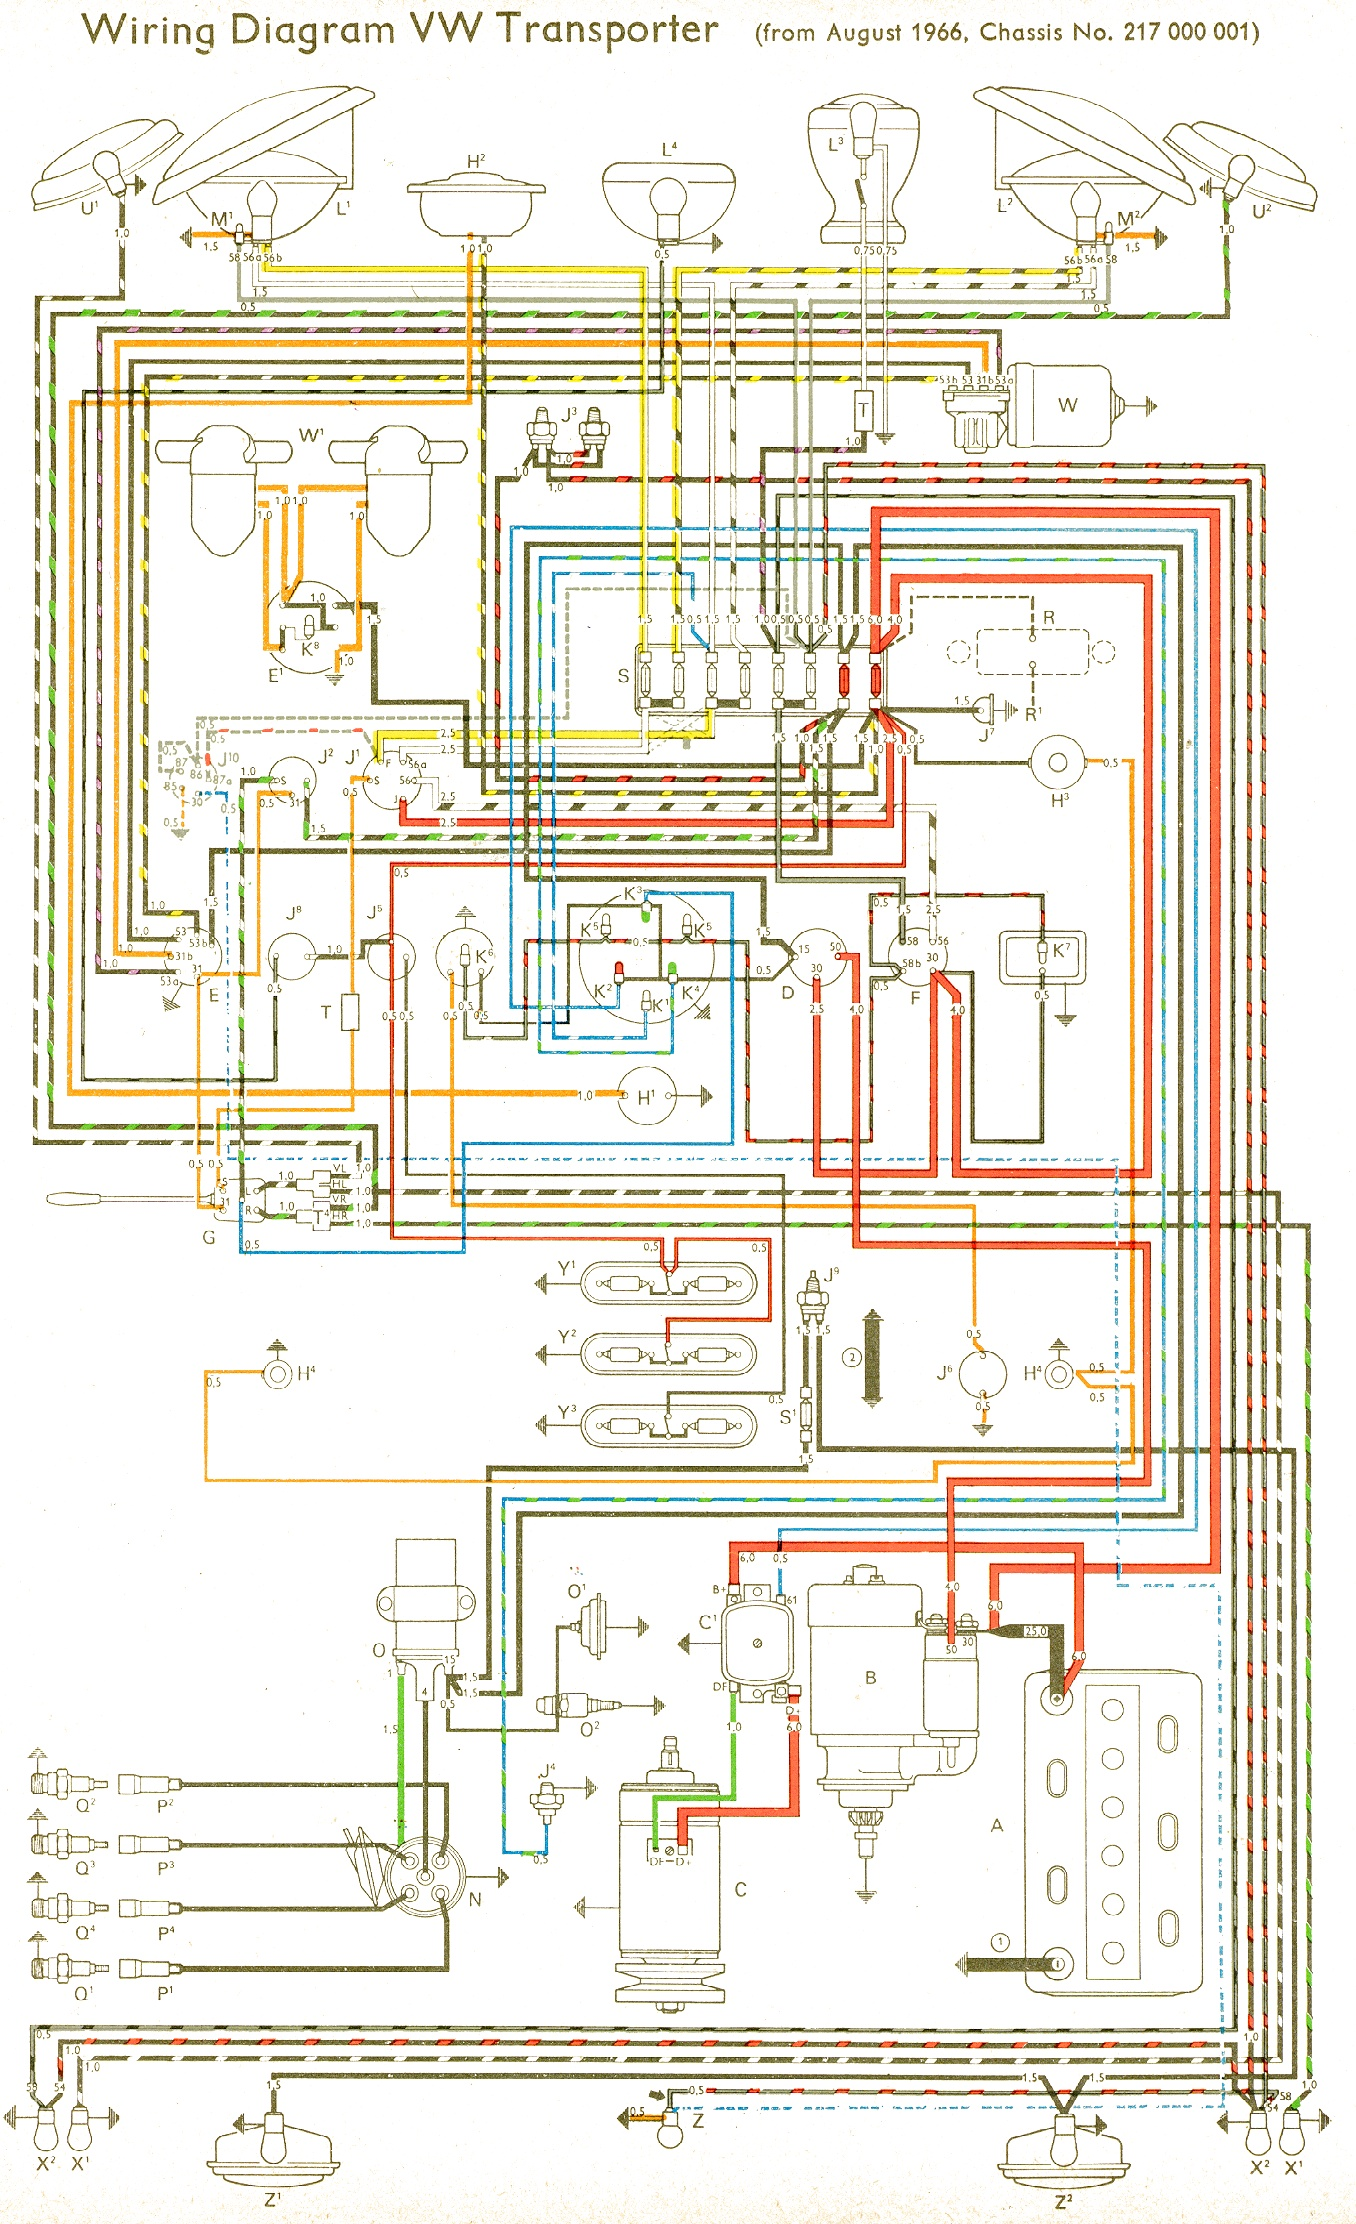 hight resolution of wire diagram for 1972 beetle wiring diagram used1972 vw wiring diagram wiring diagram paper wire diagram